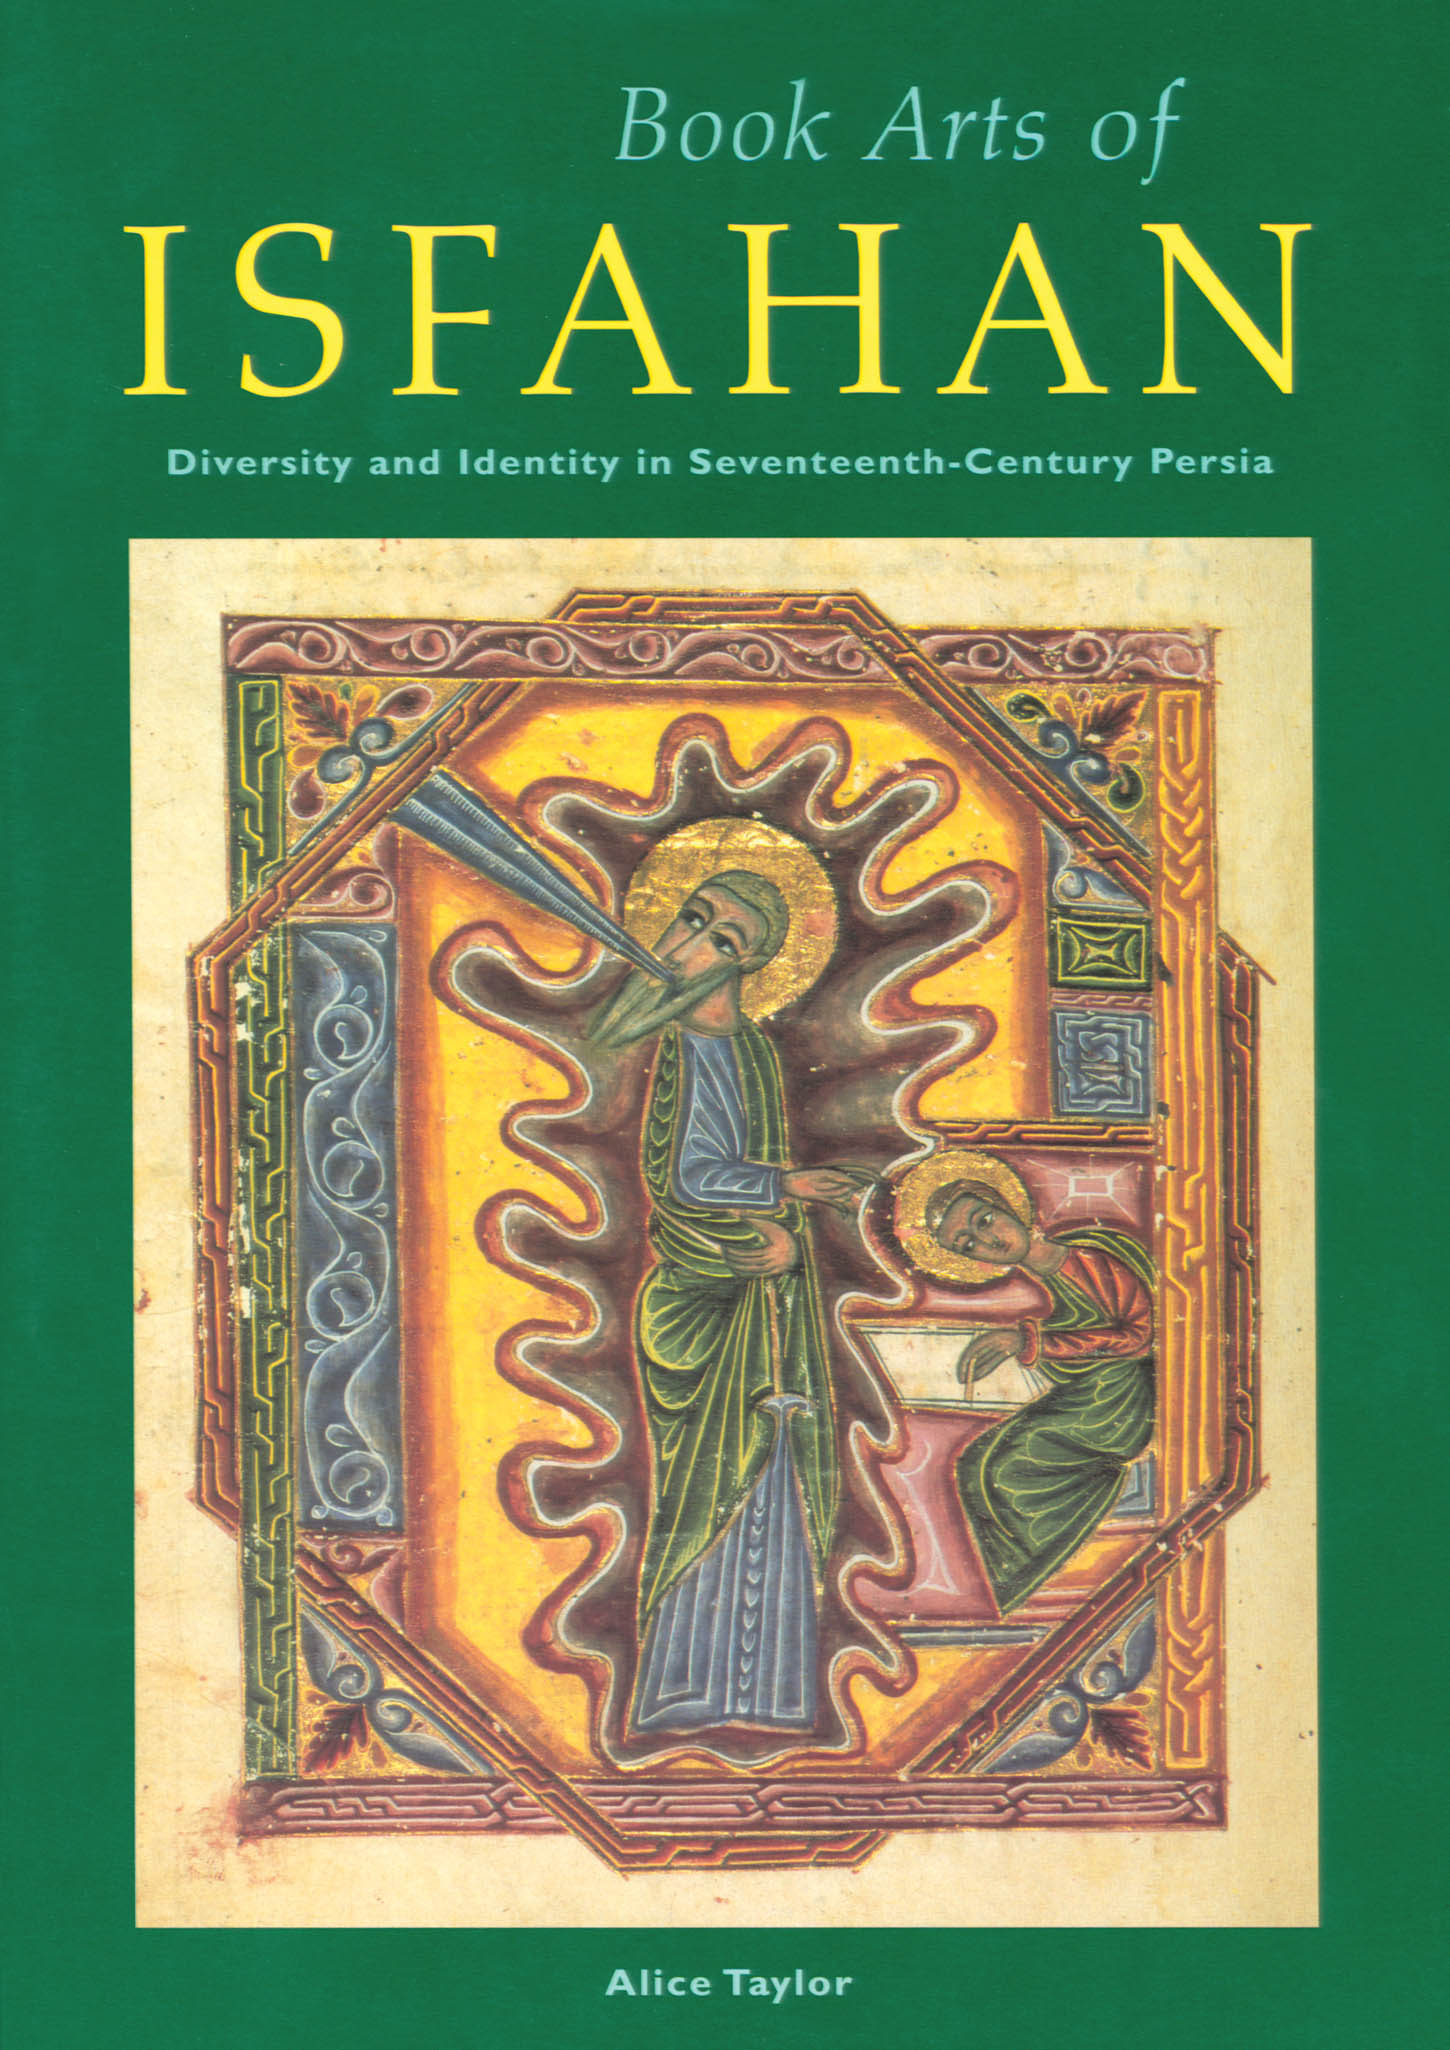 Book Arts of Isfahan: Diversity and Identity in Seventeenth-Century Persia  Alice Taylor  1995